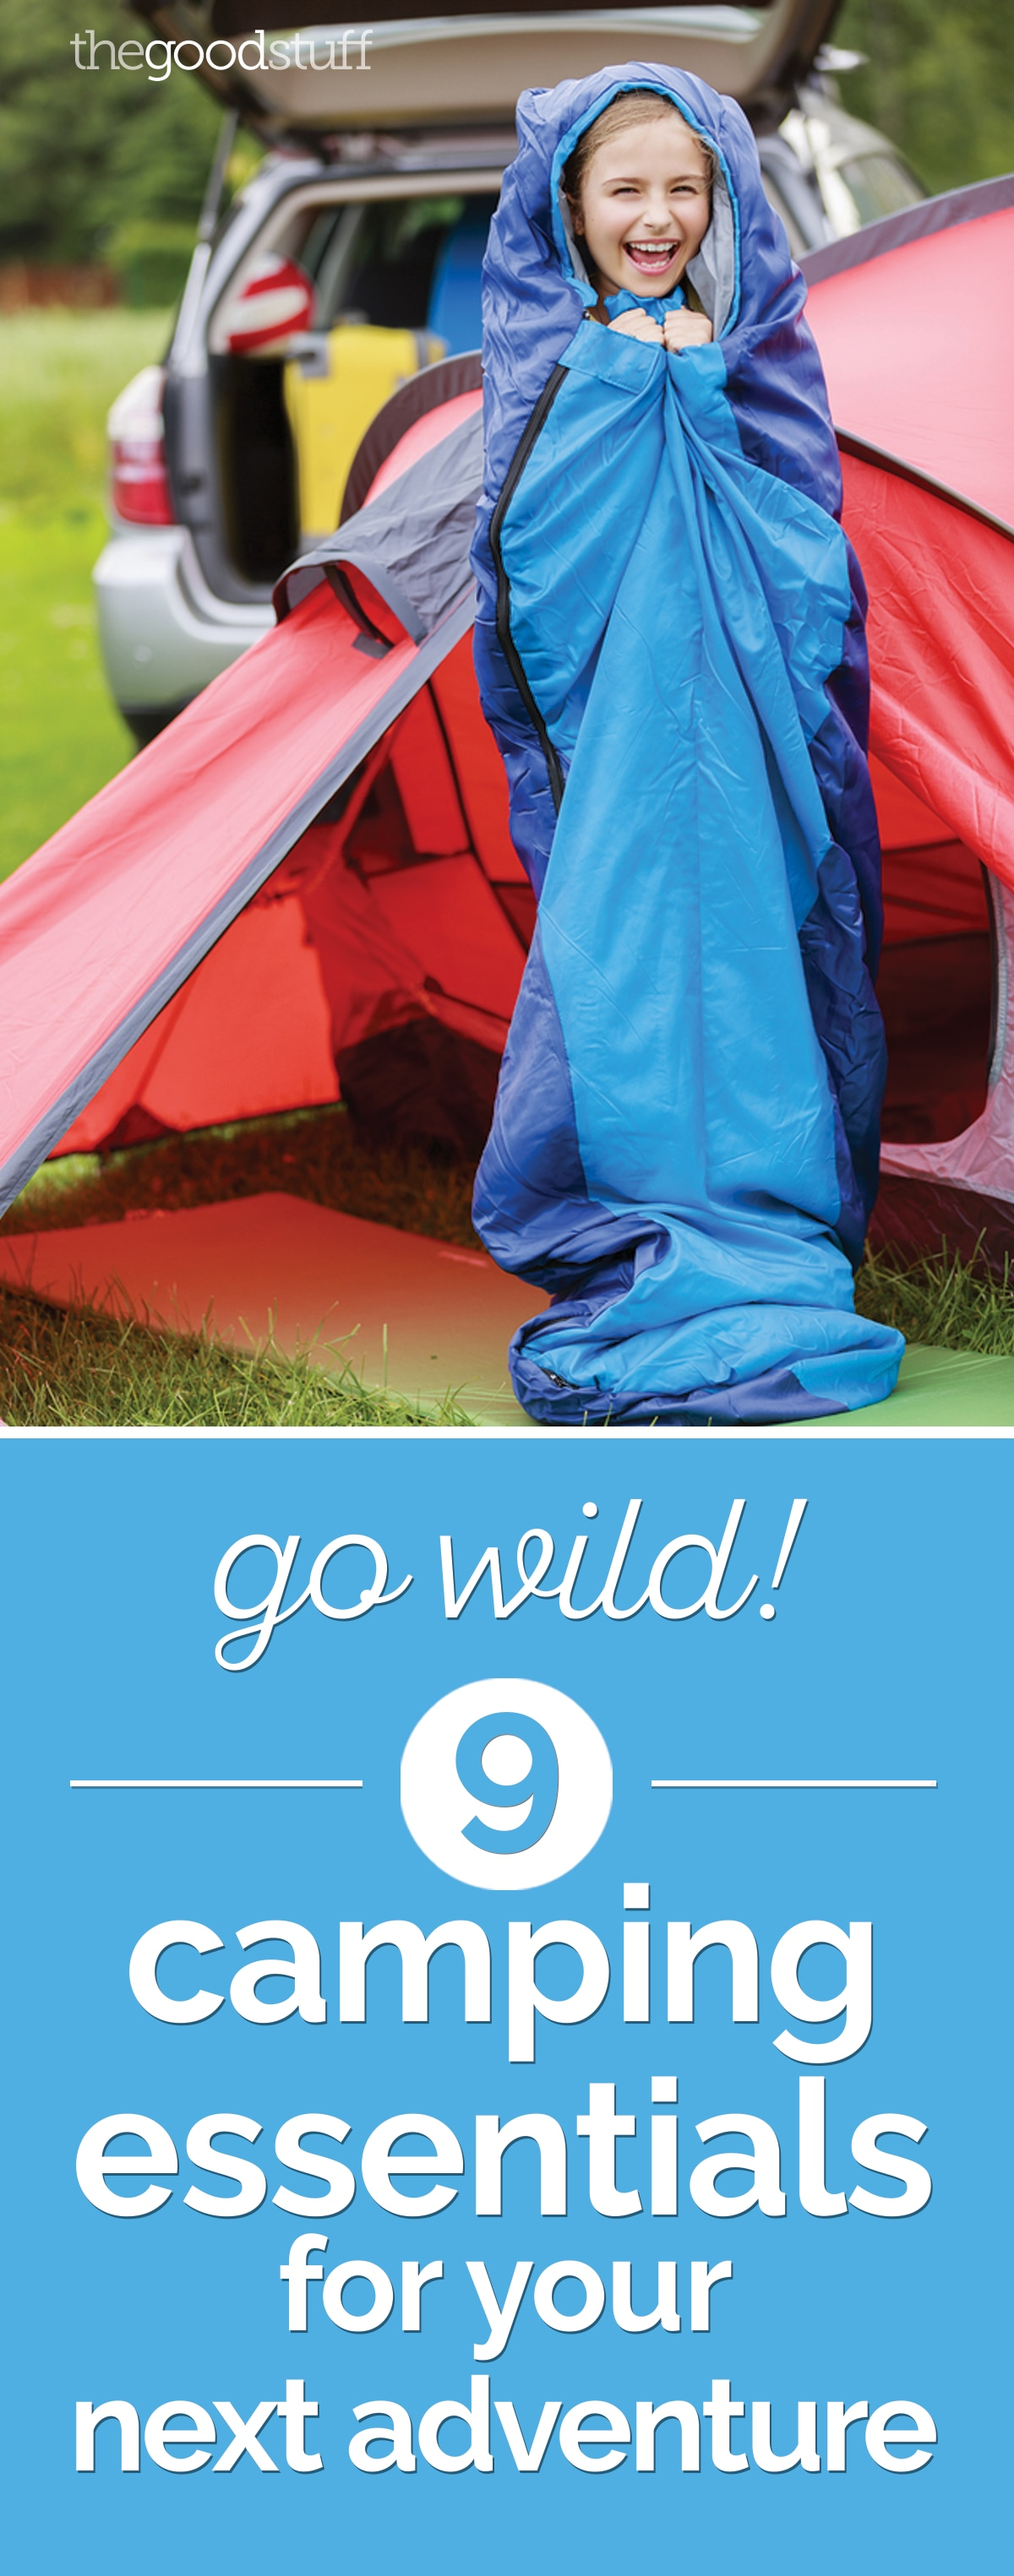 Go Wild! 9 Camping Essentials for Your Next Adventure | thegoodstuff